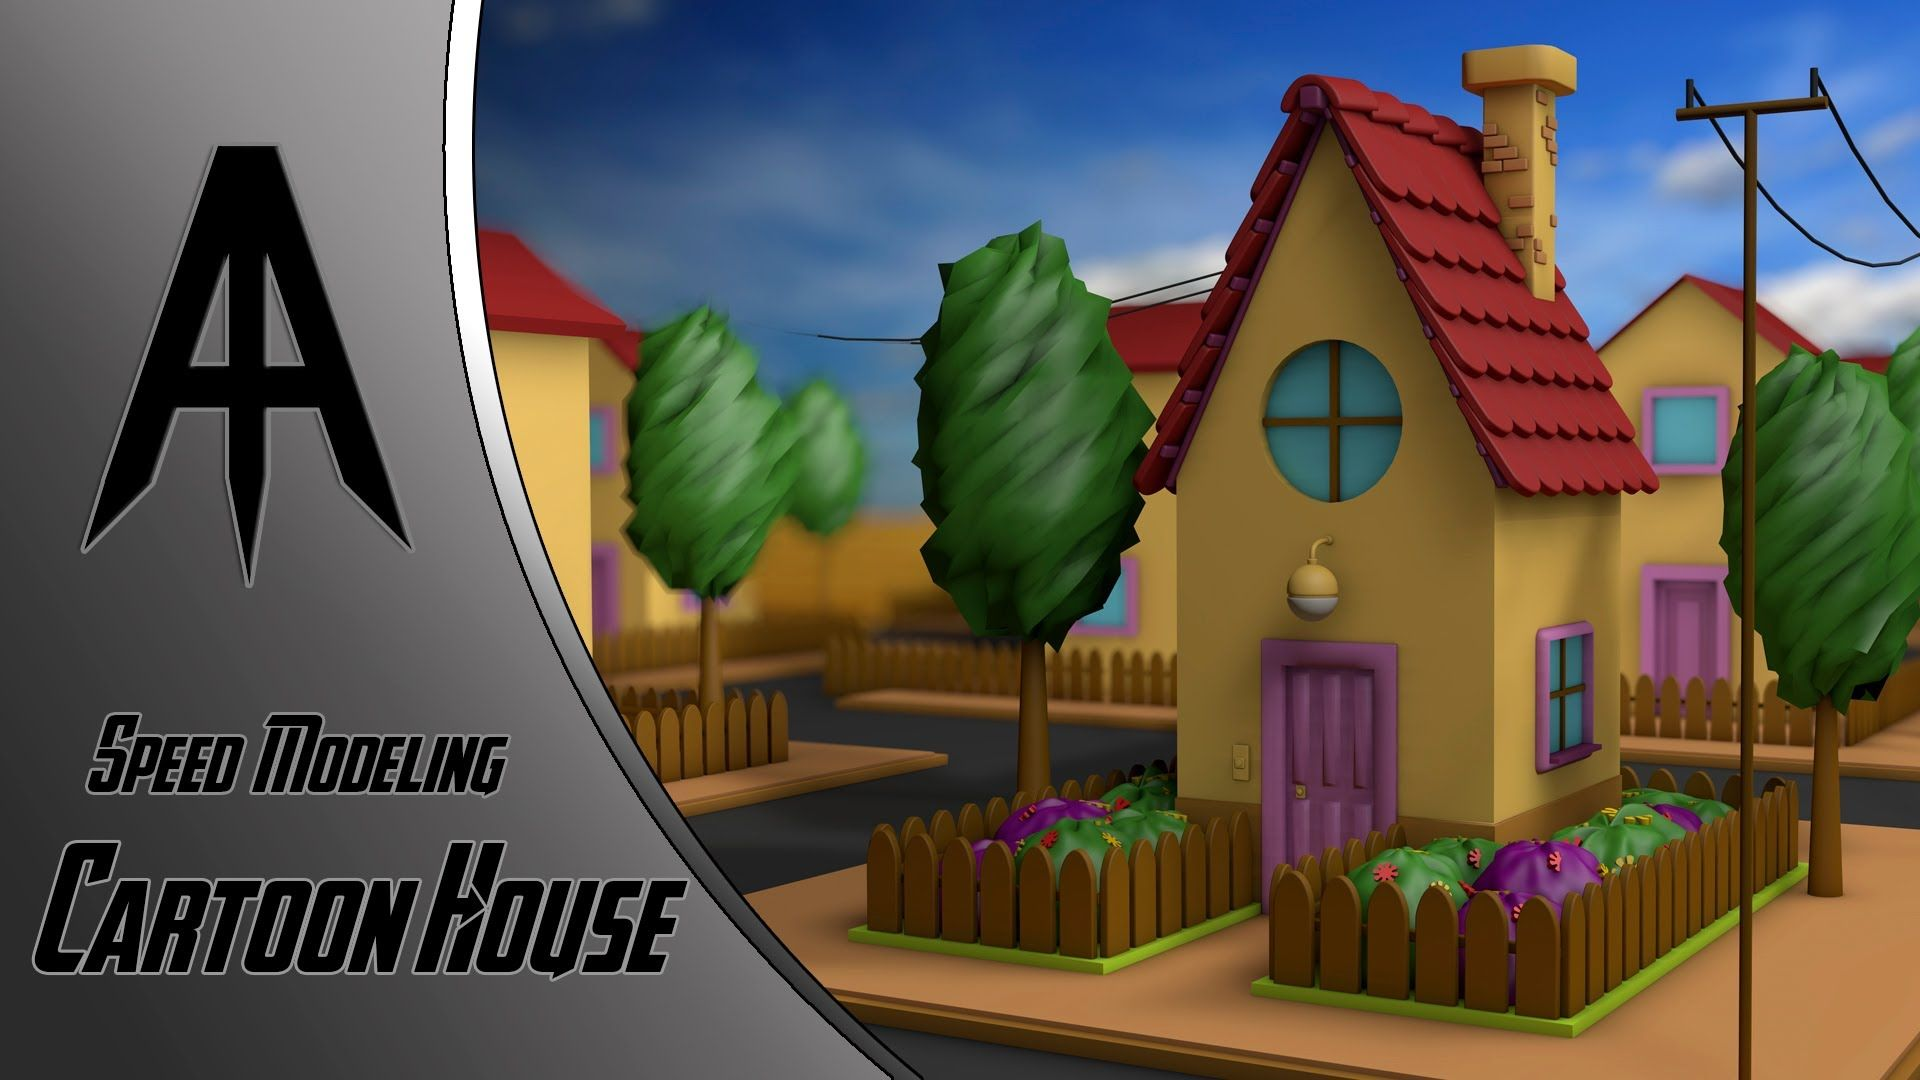 Cinema 4d speed modeling cartoon house c4d pinterest cinema 4d malvernweather Choice Image